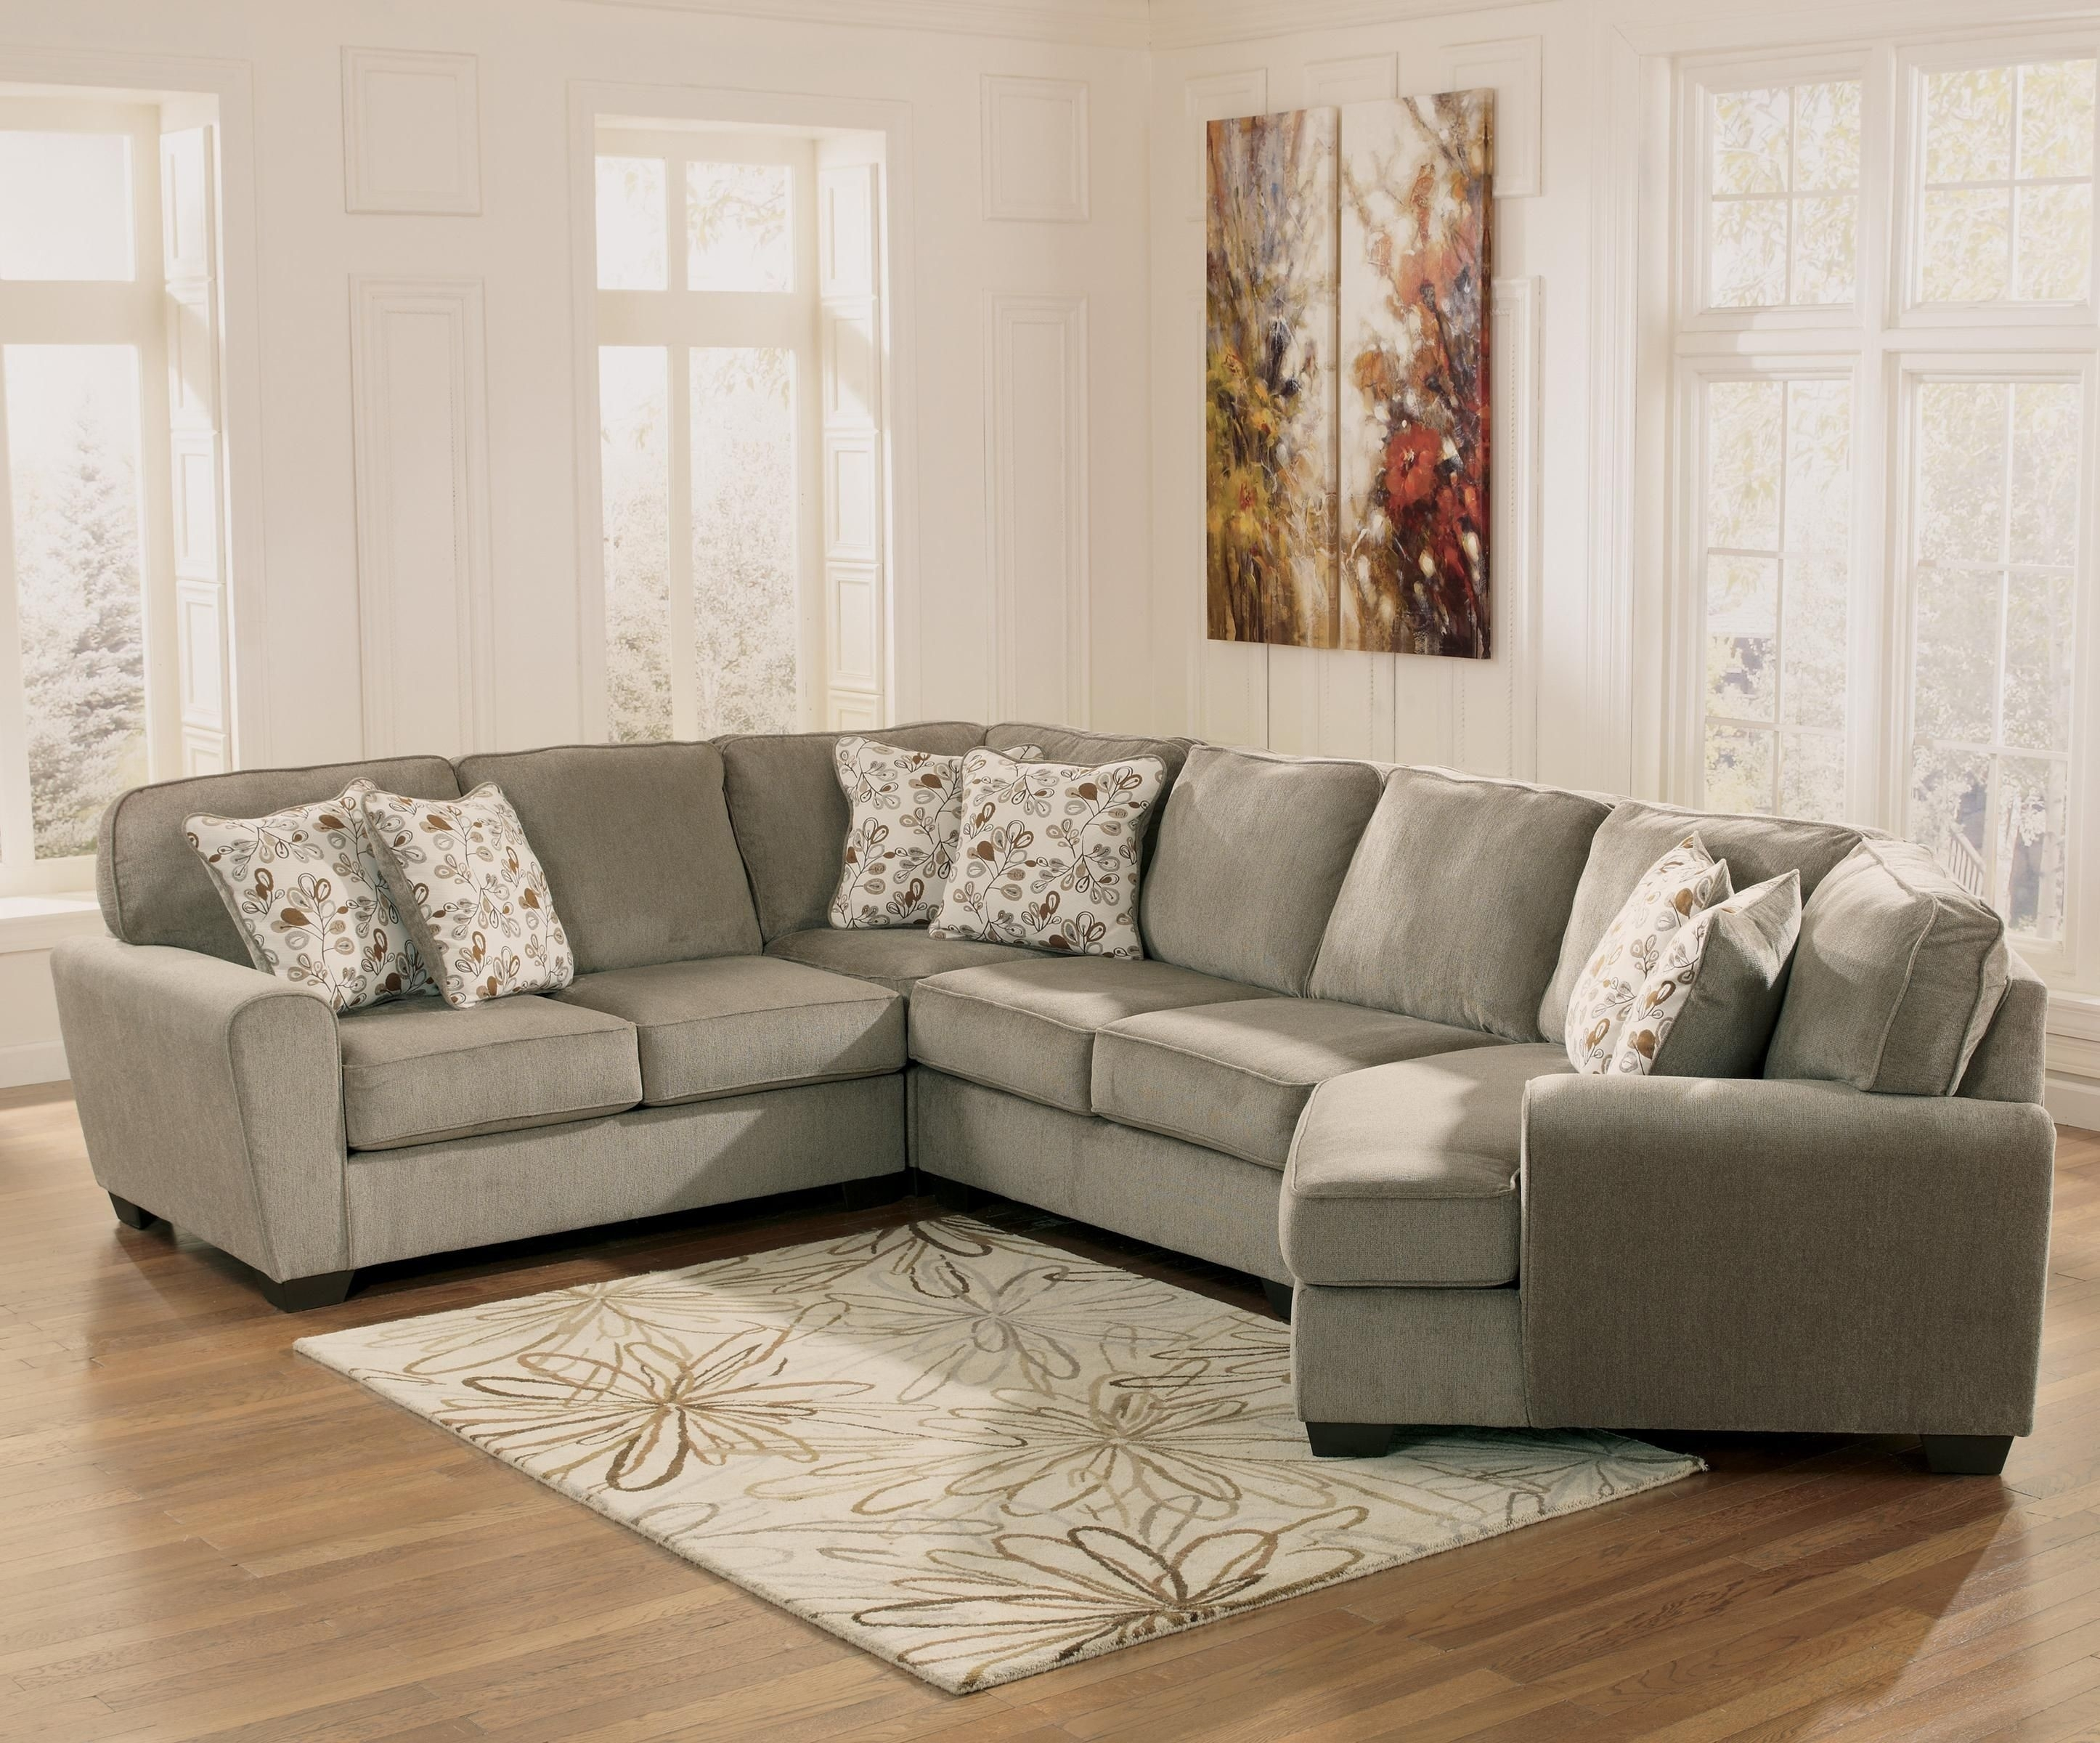 Darcy Couch Ashley Furniture Within Sectional Sofas At Ashley Furniture (View 7 of 15)